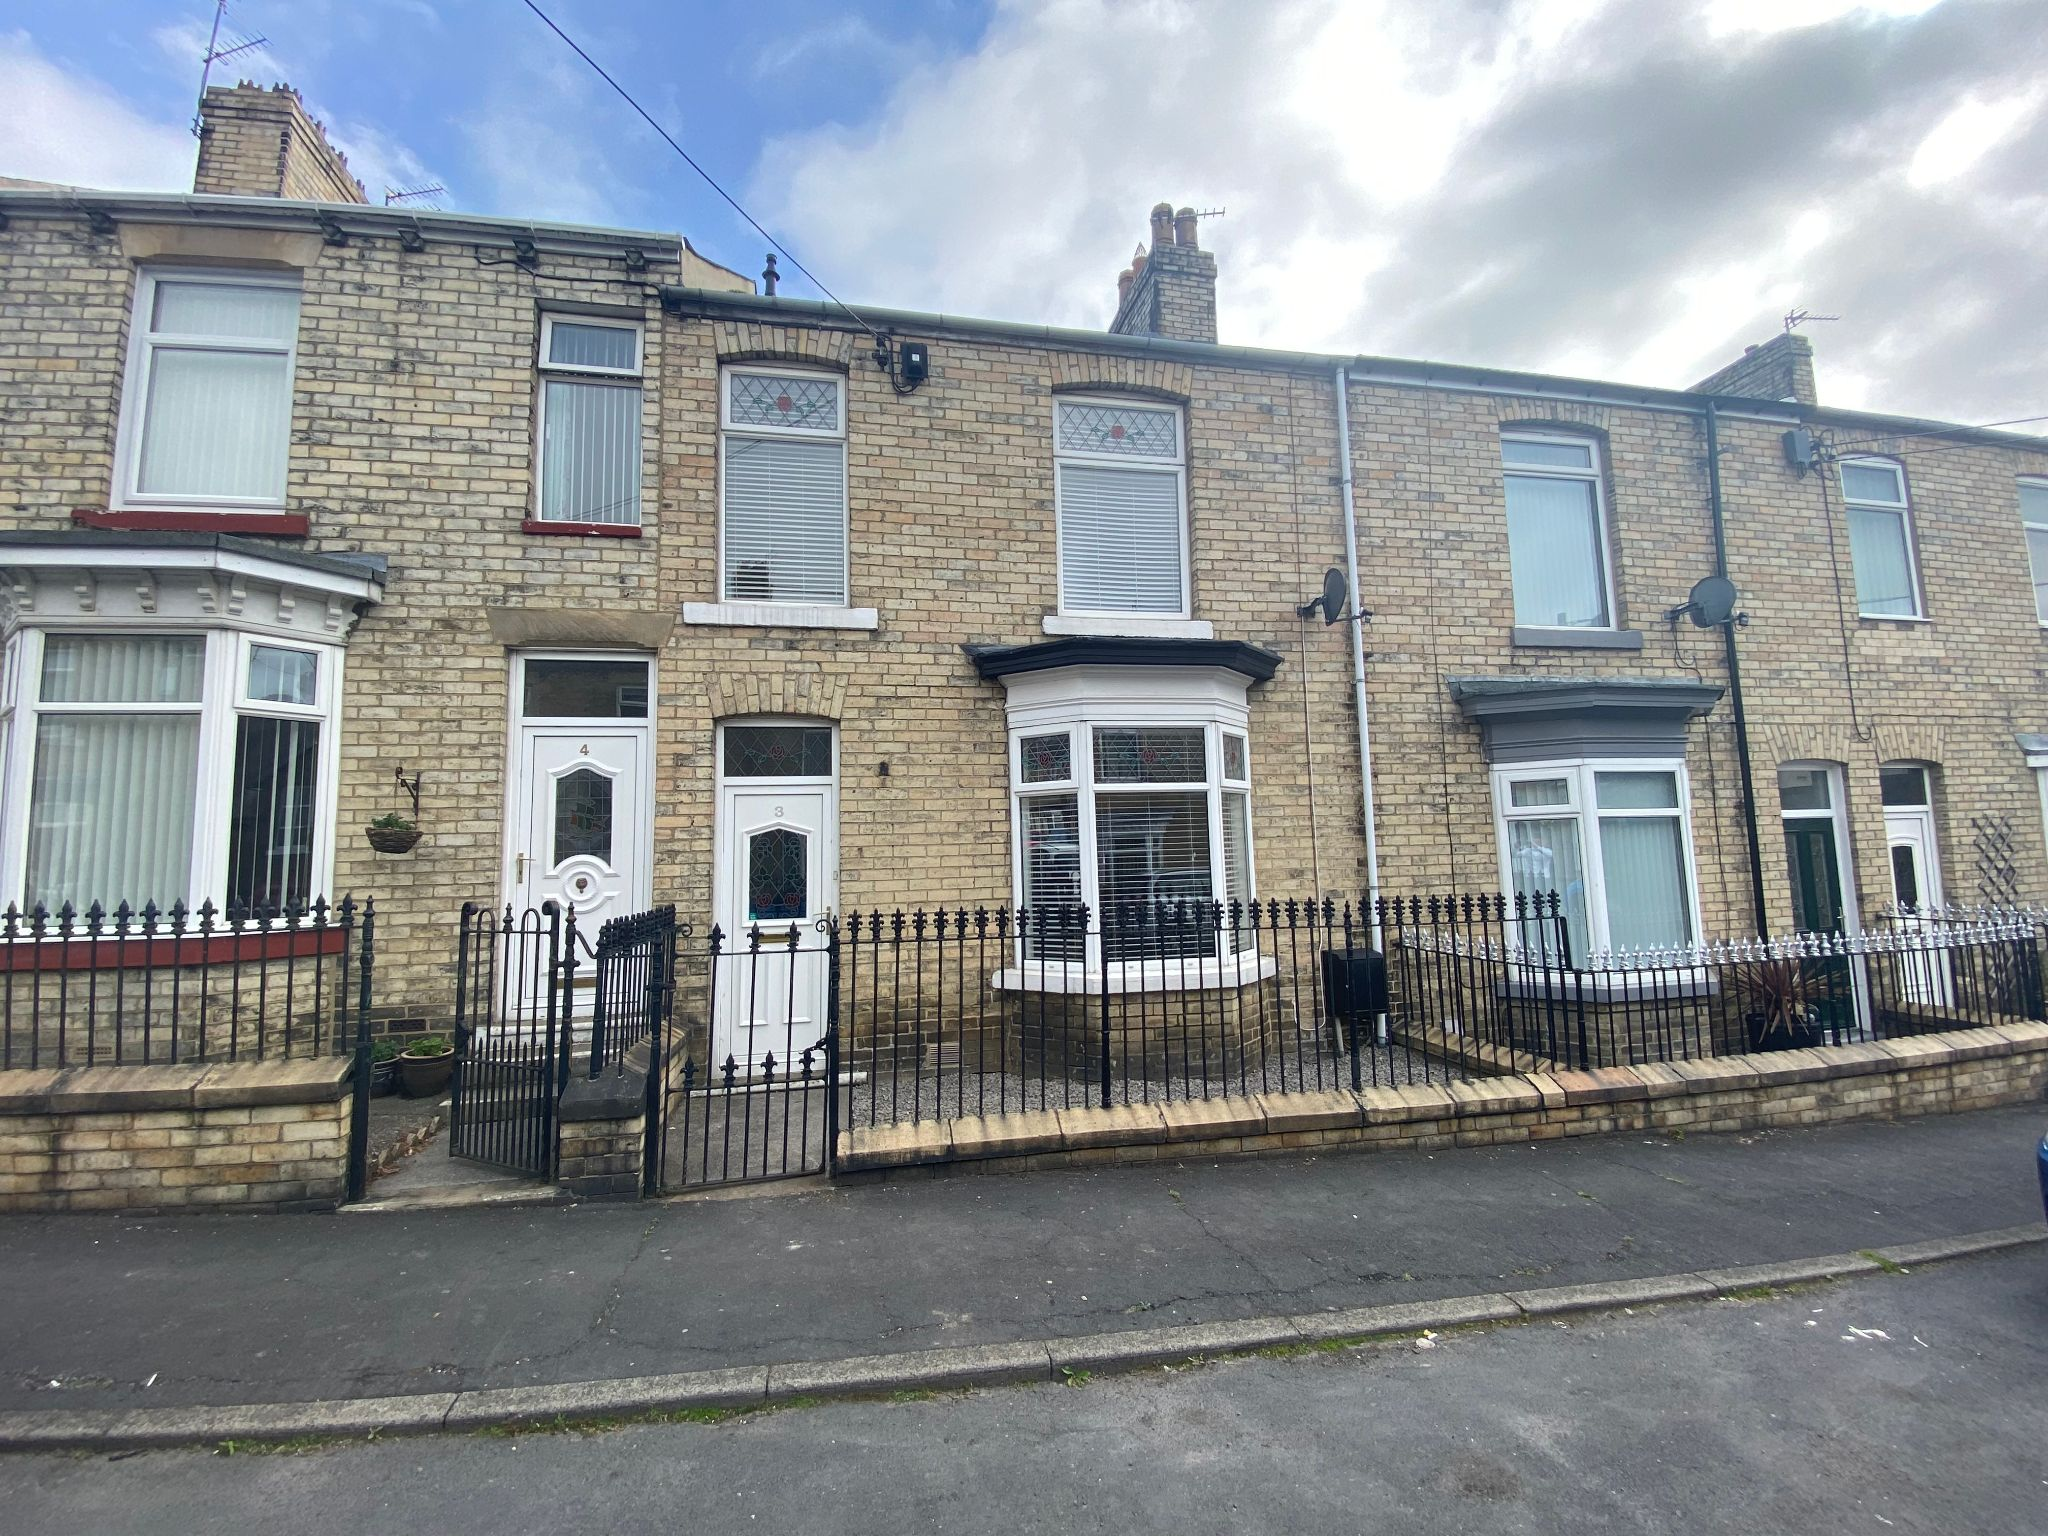 3 bedroom mid terraced house Sale Agreed in Crook - Photograph 1.